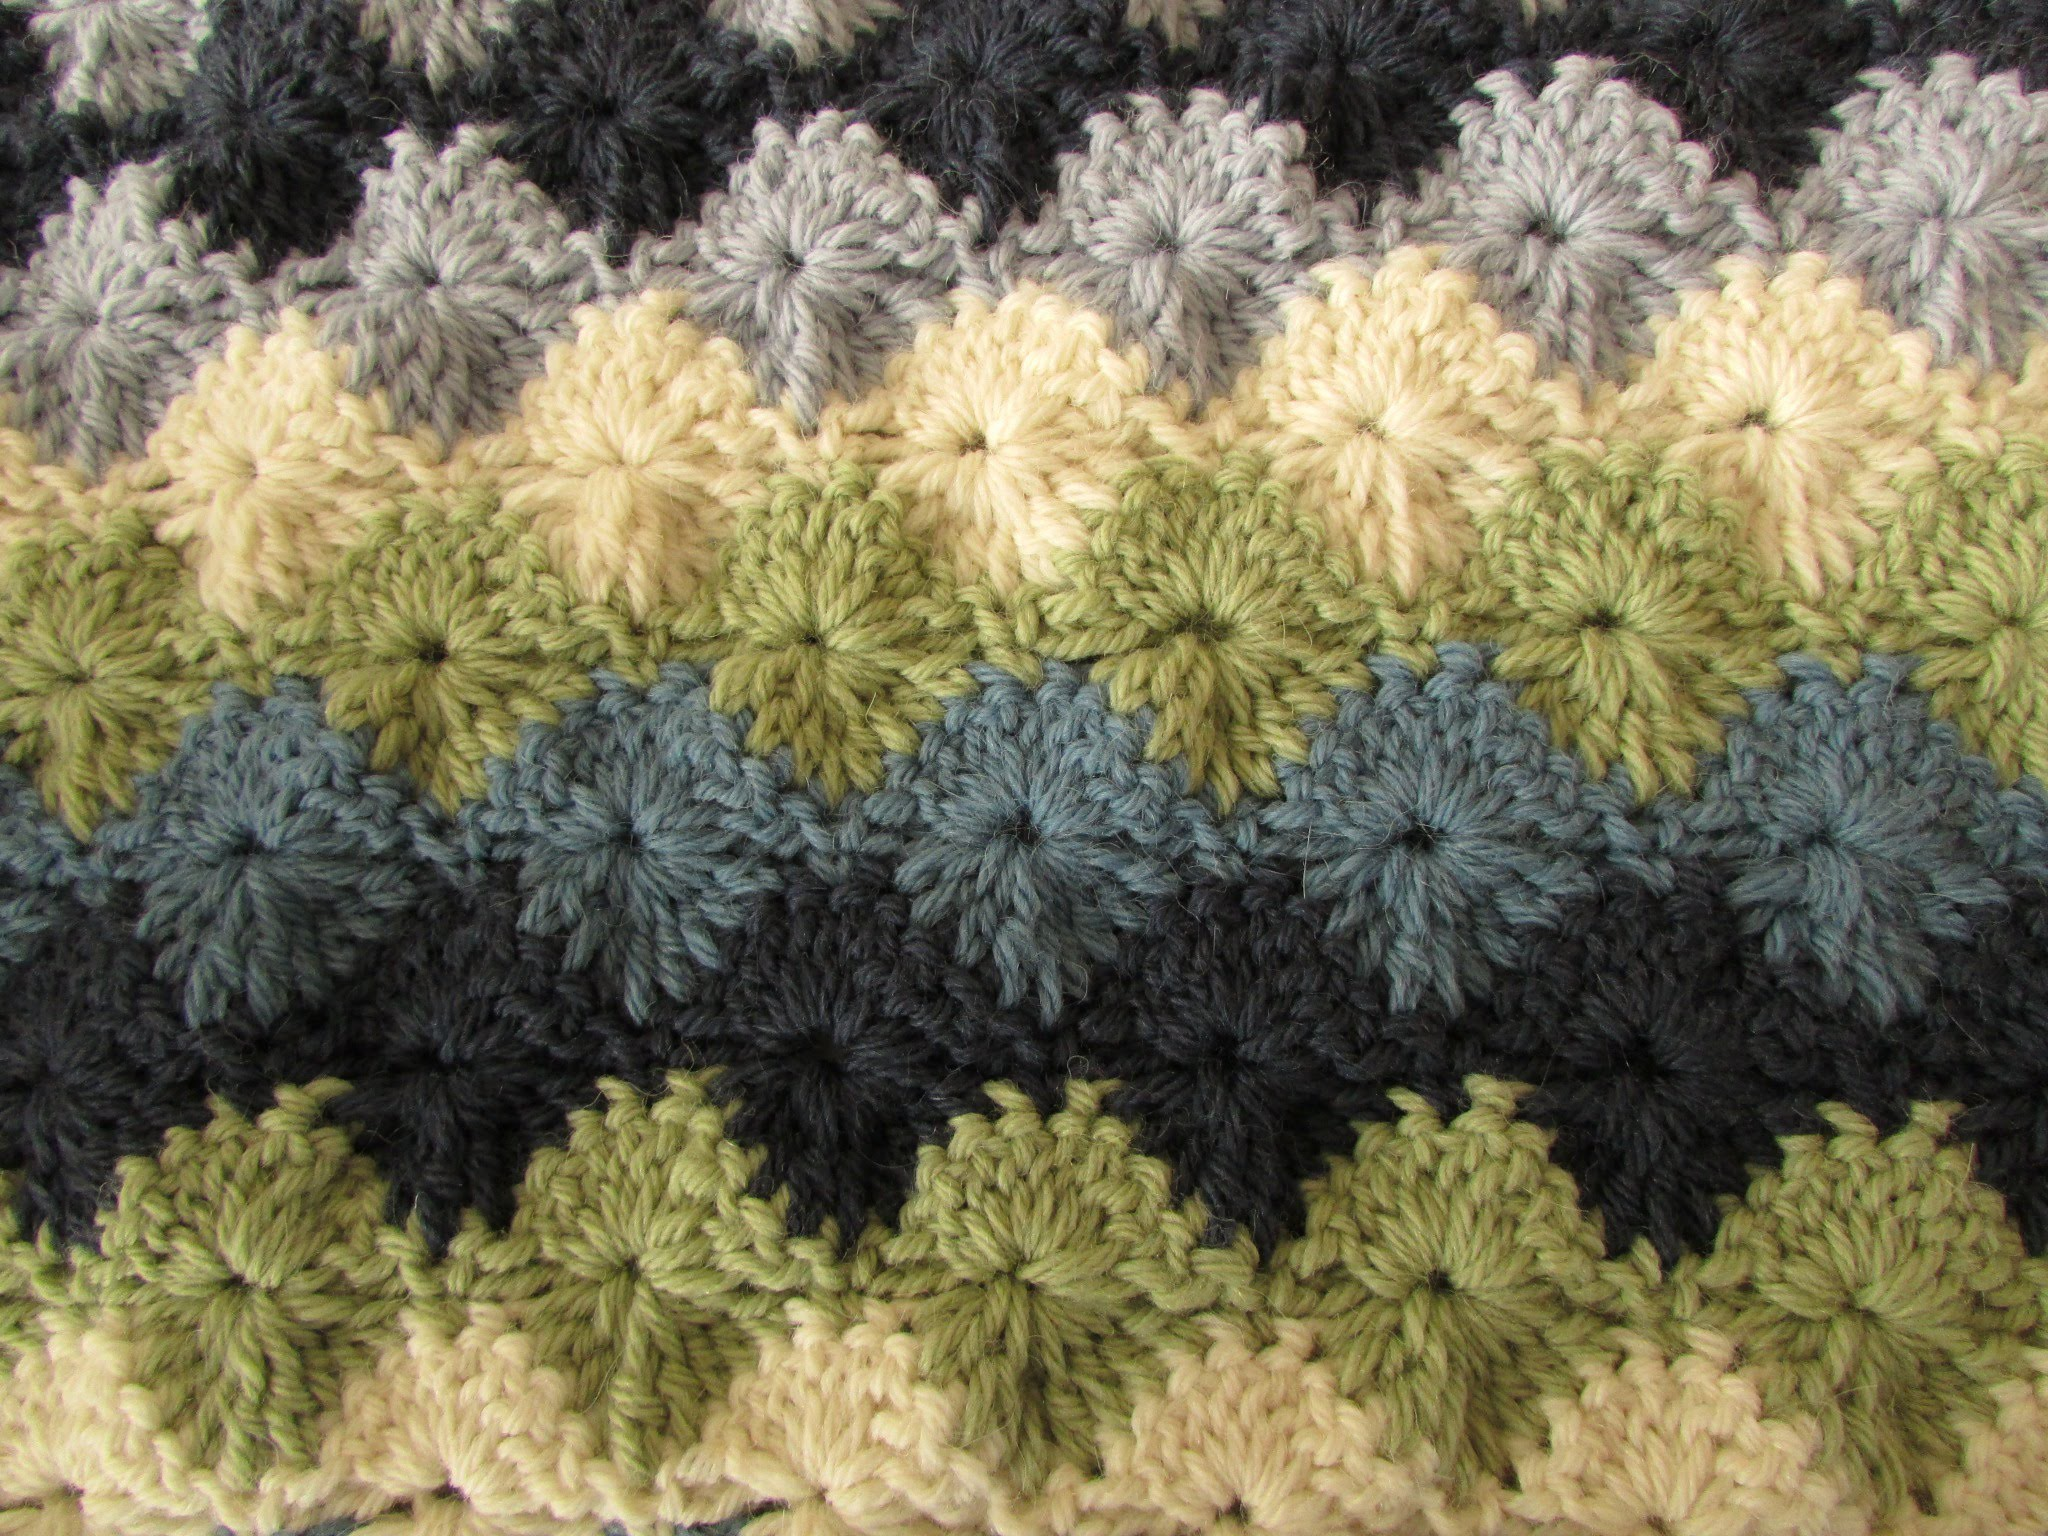 EASY crochet catherine wheel. starburst stitch blanket tutorial - part 1